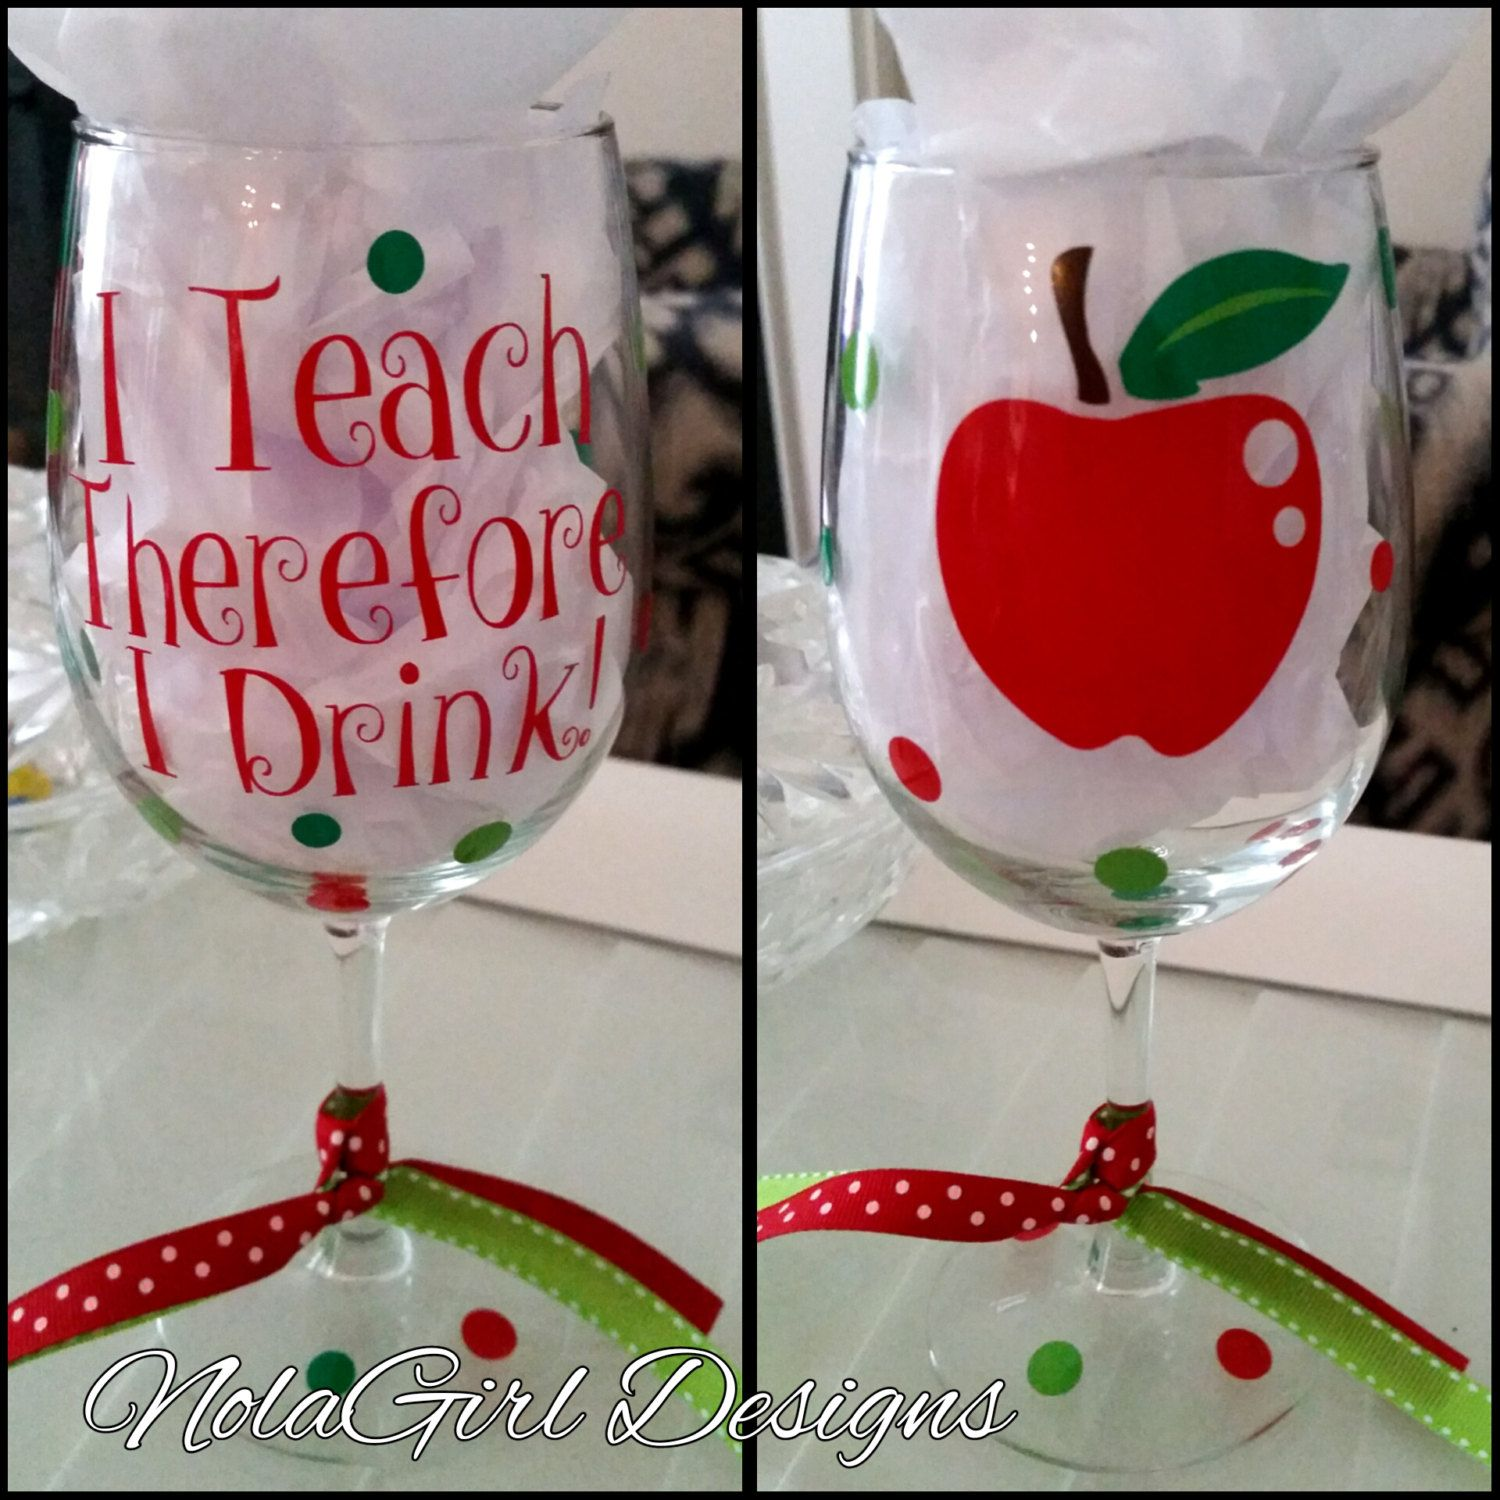 Teacher Wine Glass I Teach Therefore I Drink Wine Glass Apple Wine Glass Vinyl Decorated Glass Apple Gift Lad Teacher Wine Glass Wine Teacher Wine Gifts